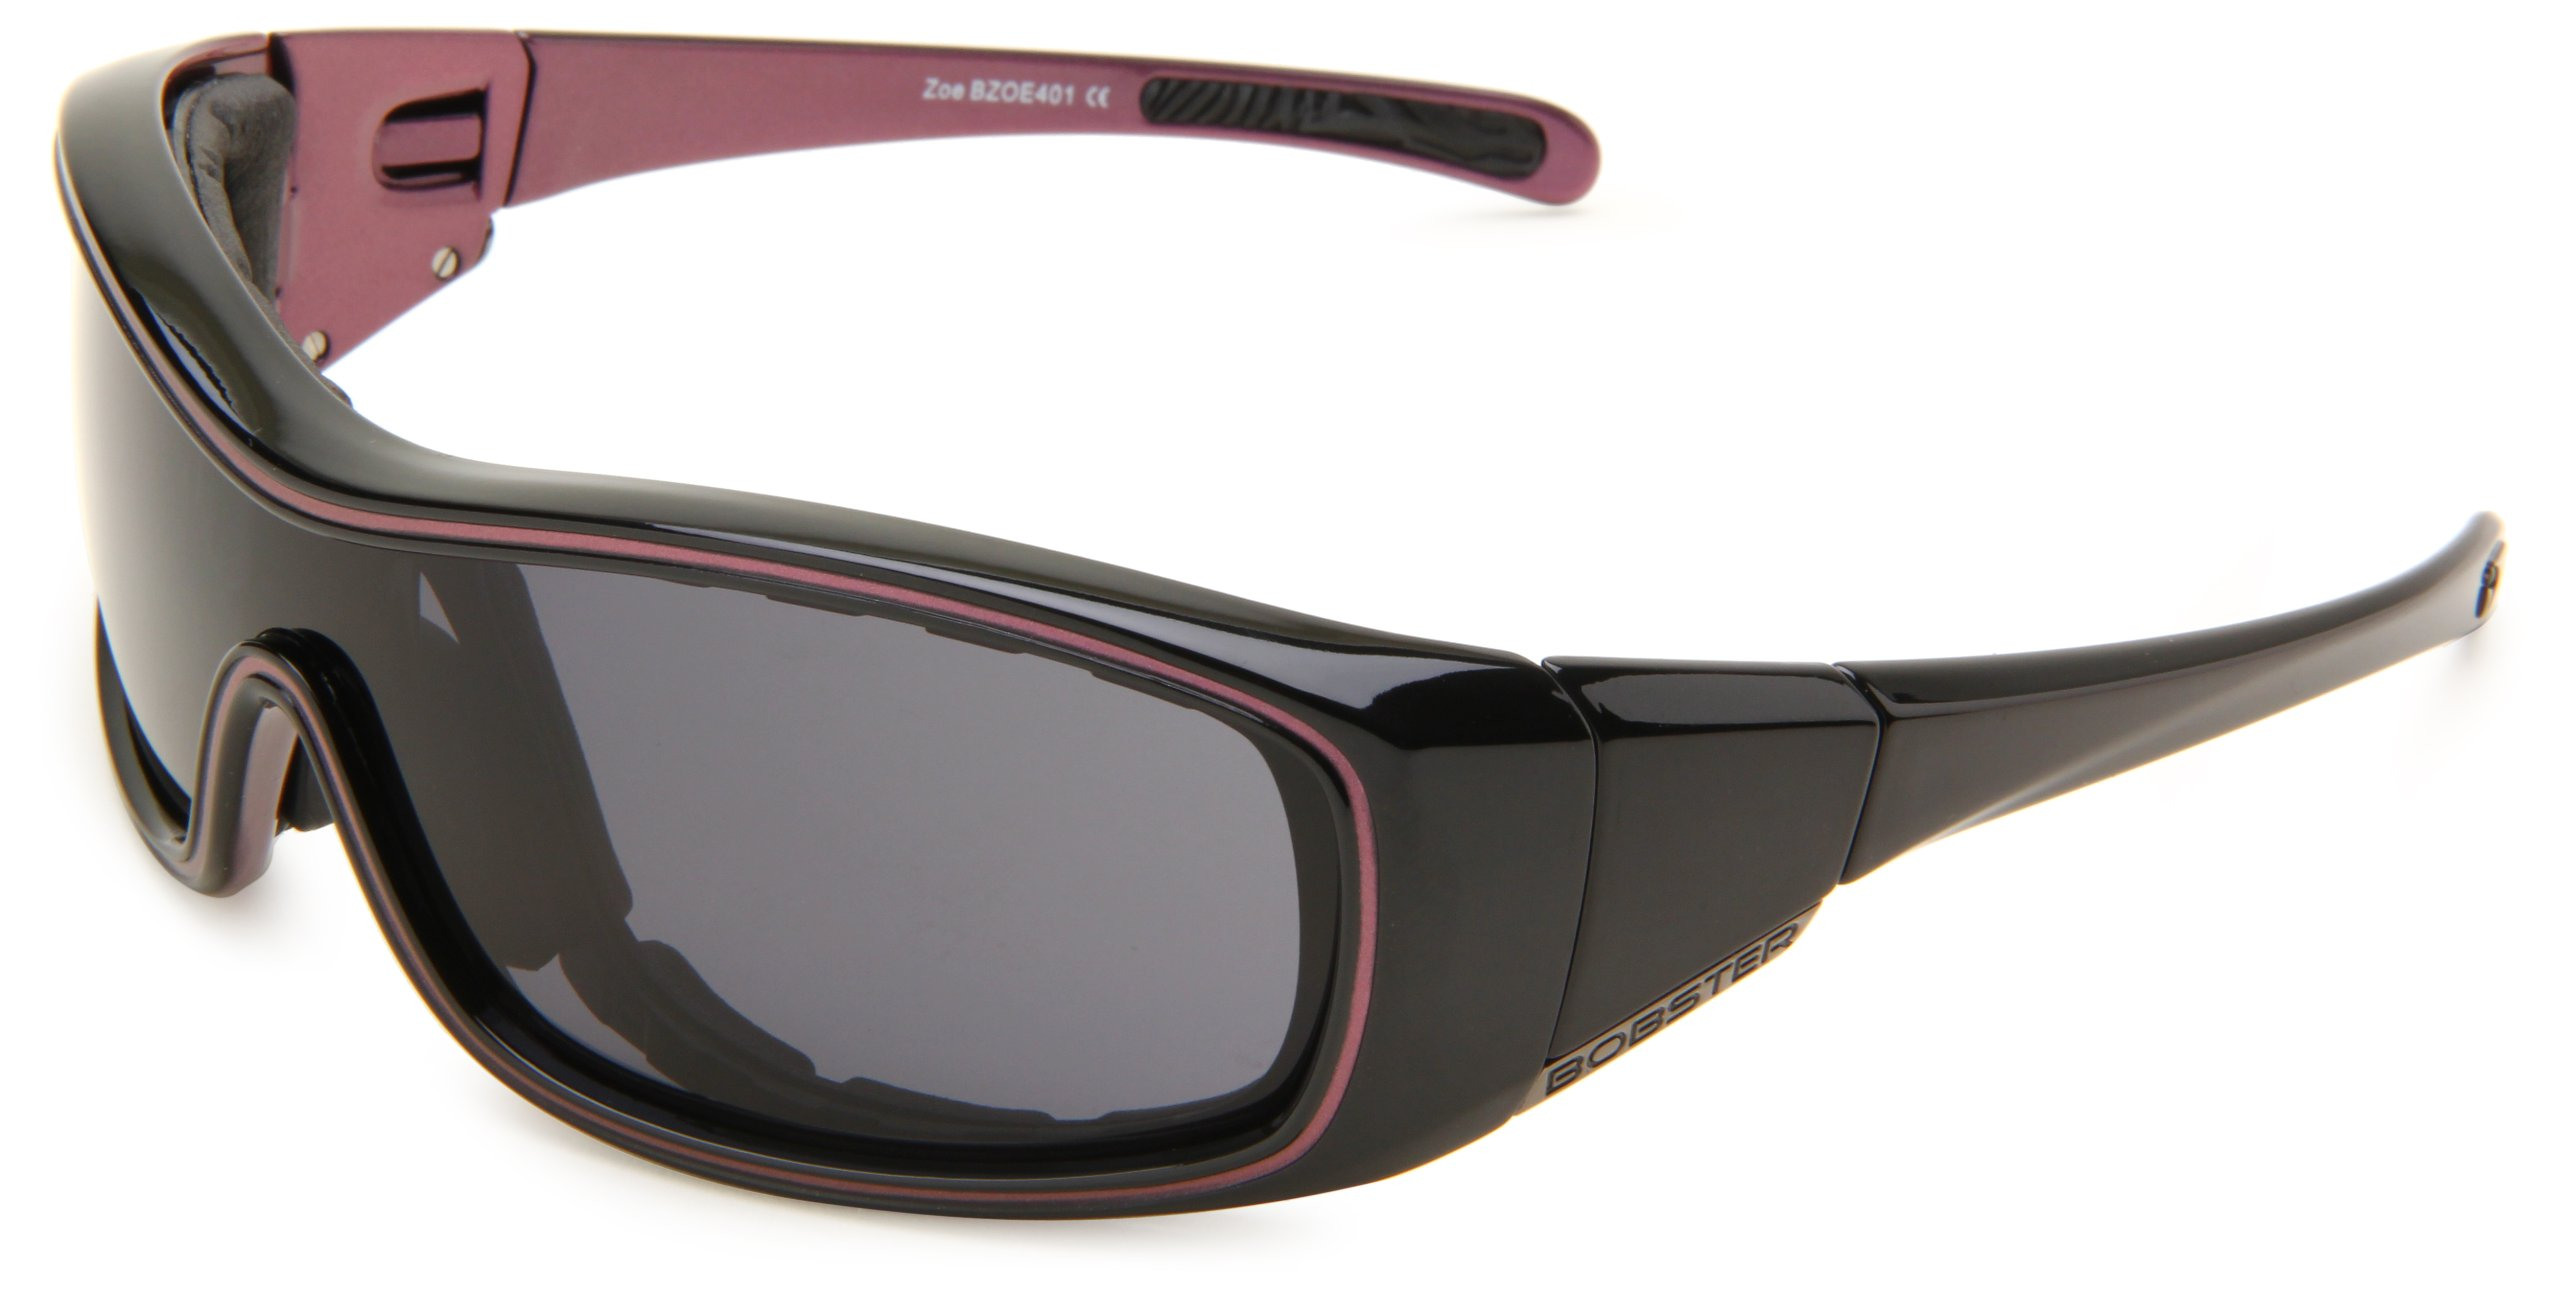 Bobster Zoe Convertible Oval Sunglasses,Black & Purple Frame/Smoked Anti Fog Lens,One Size